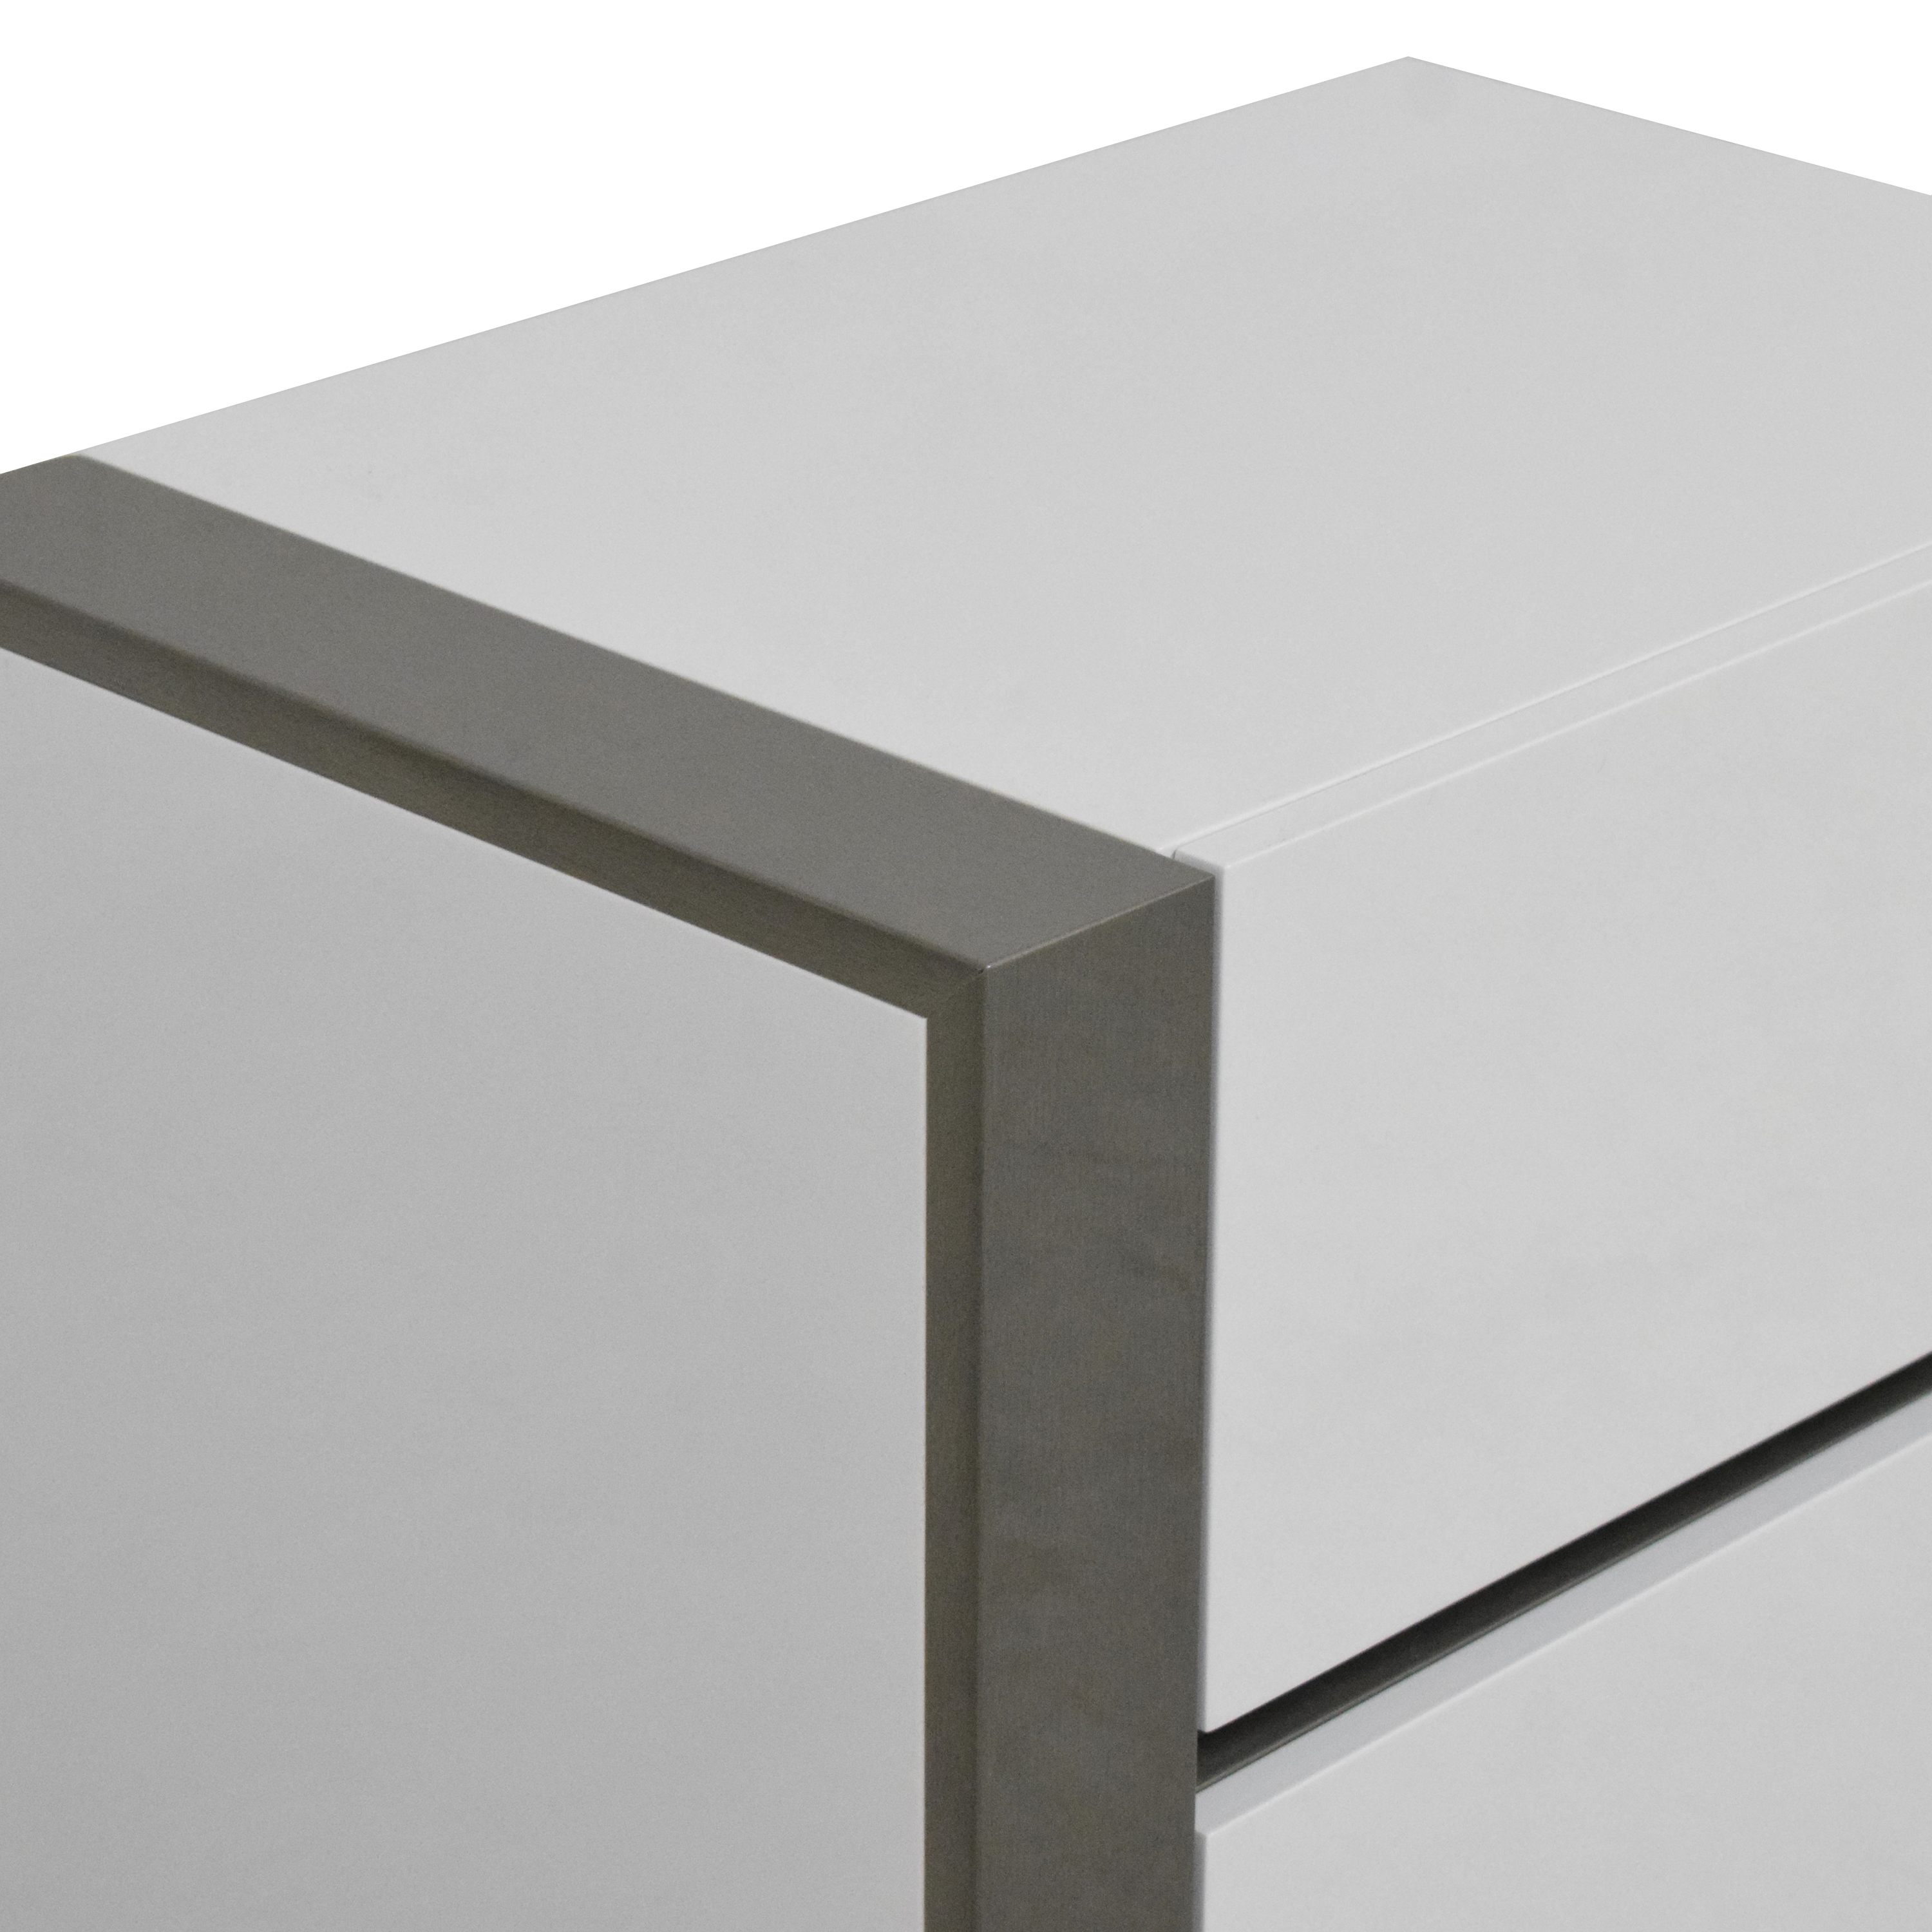 Chintaly Imports Chintaly Imports Manila Left Nightstand dimensions